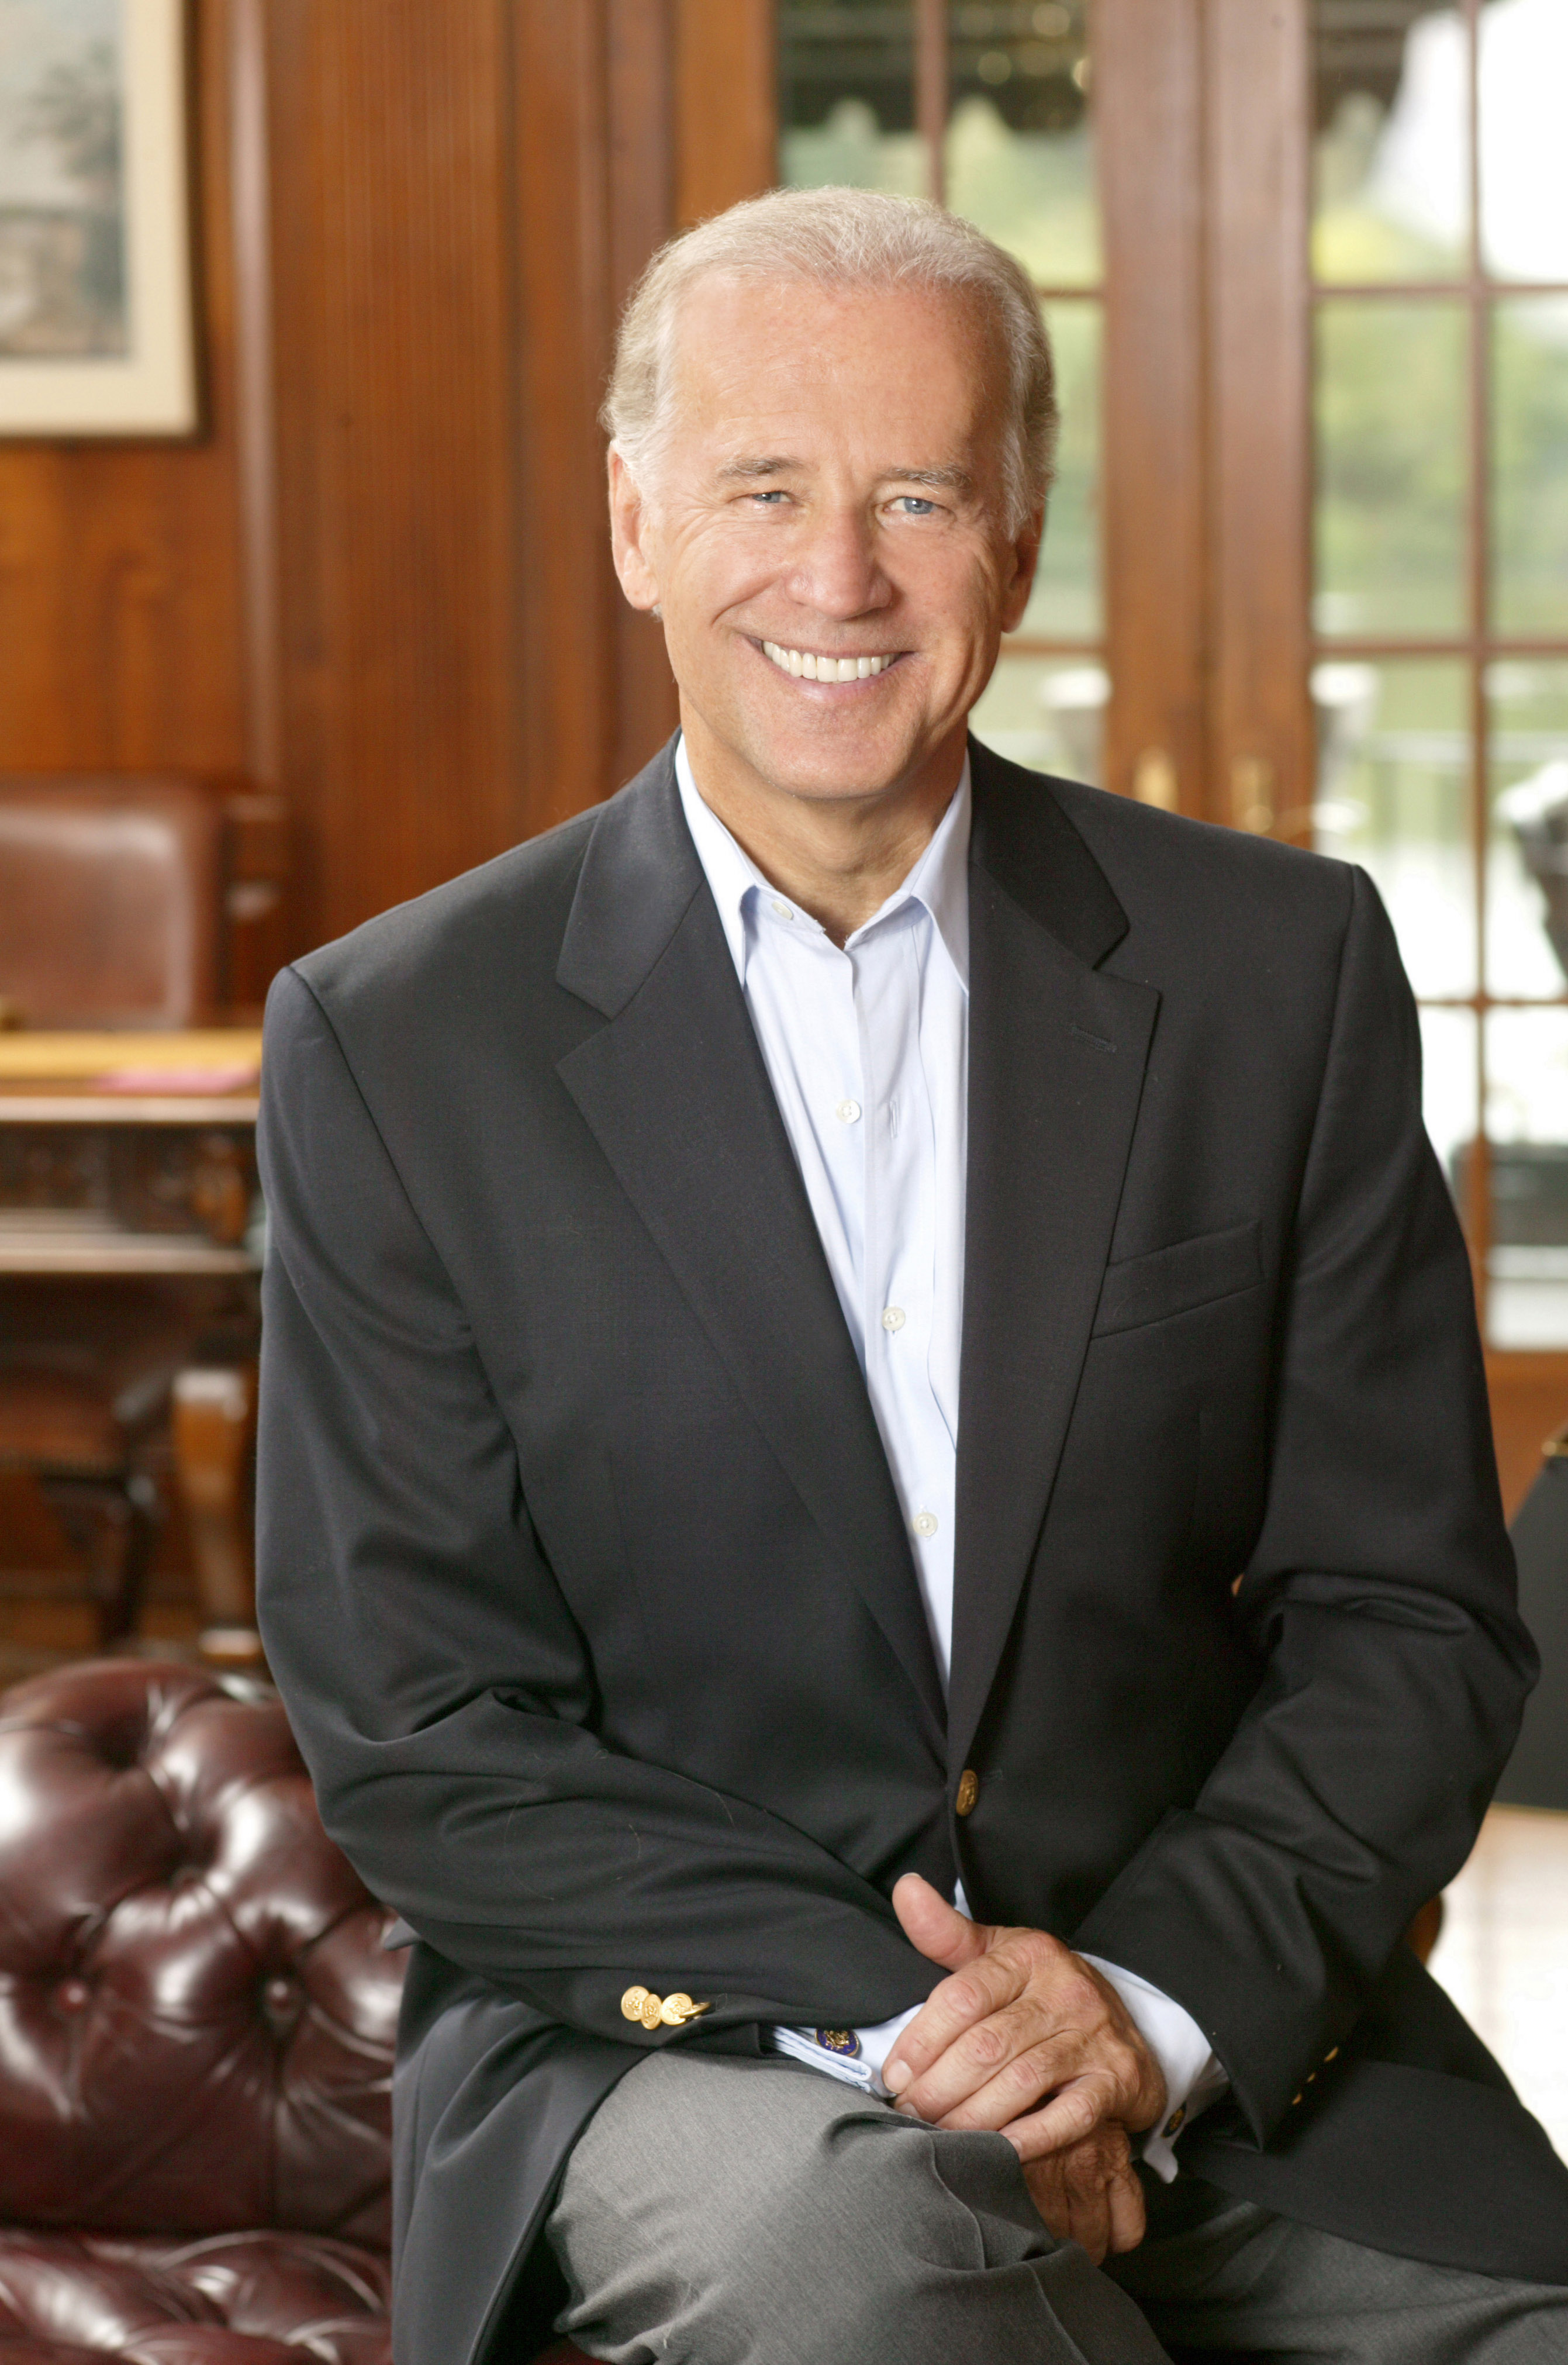 File:Joe Biden, official photo portrait 2.jpg - Wikimedia Commons